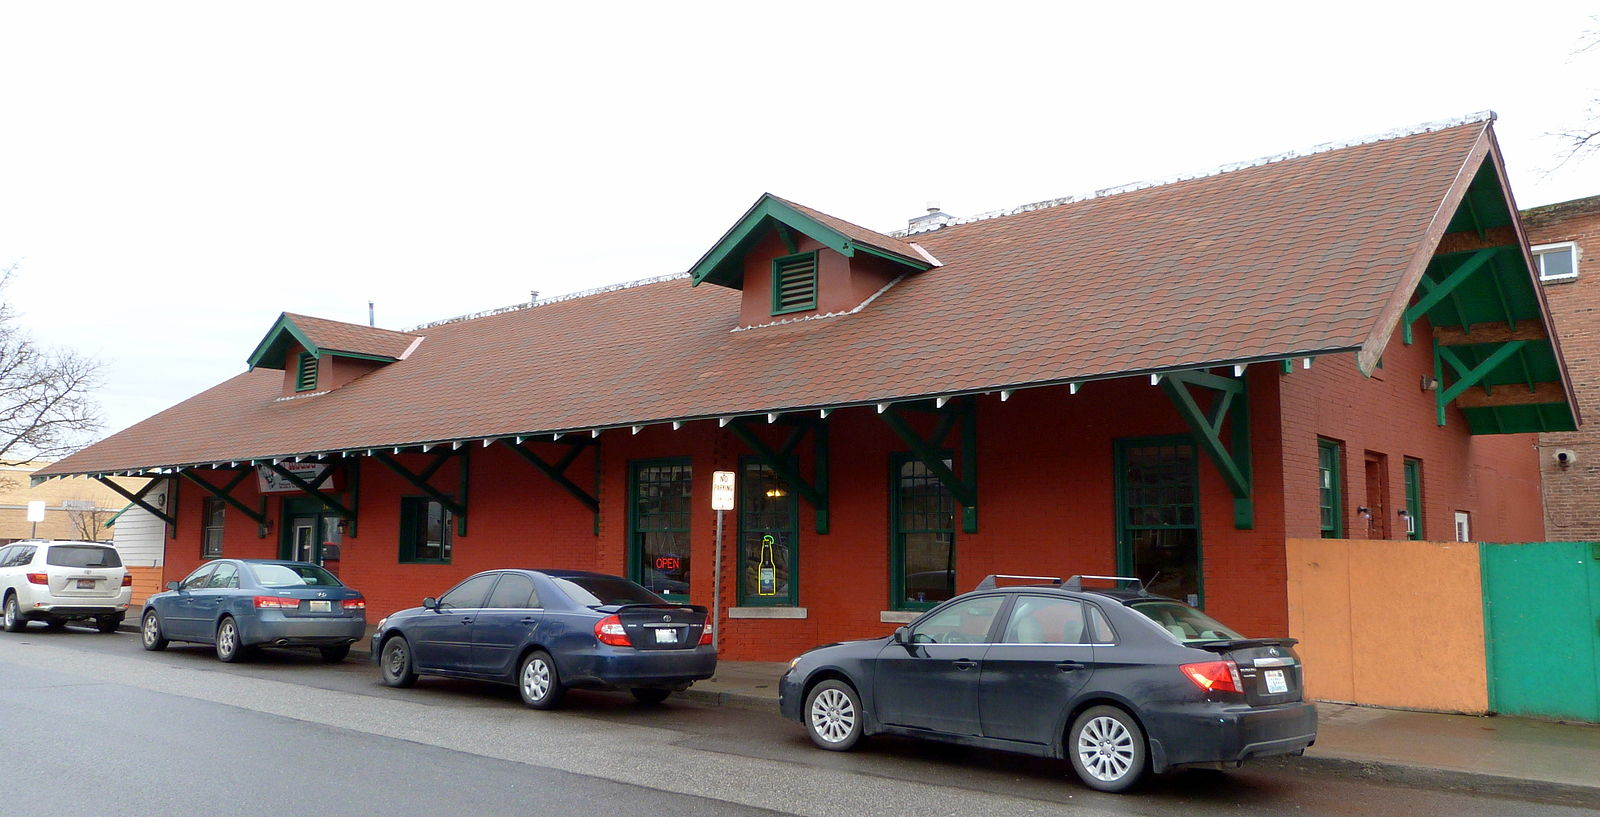 Cheney_Interurban_Depot_-_Cheney_Washington